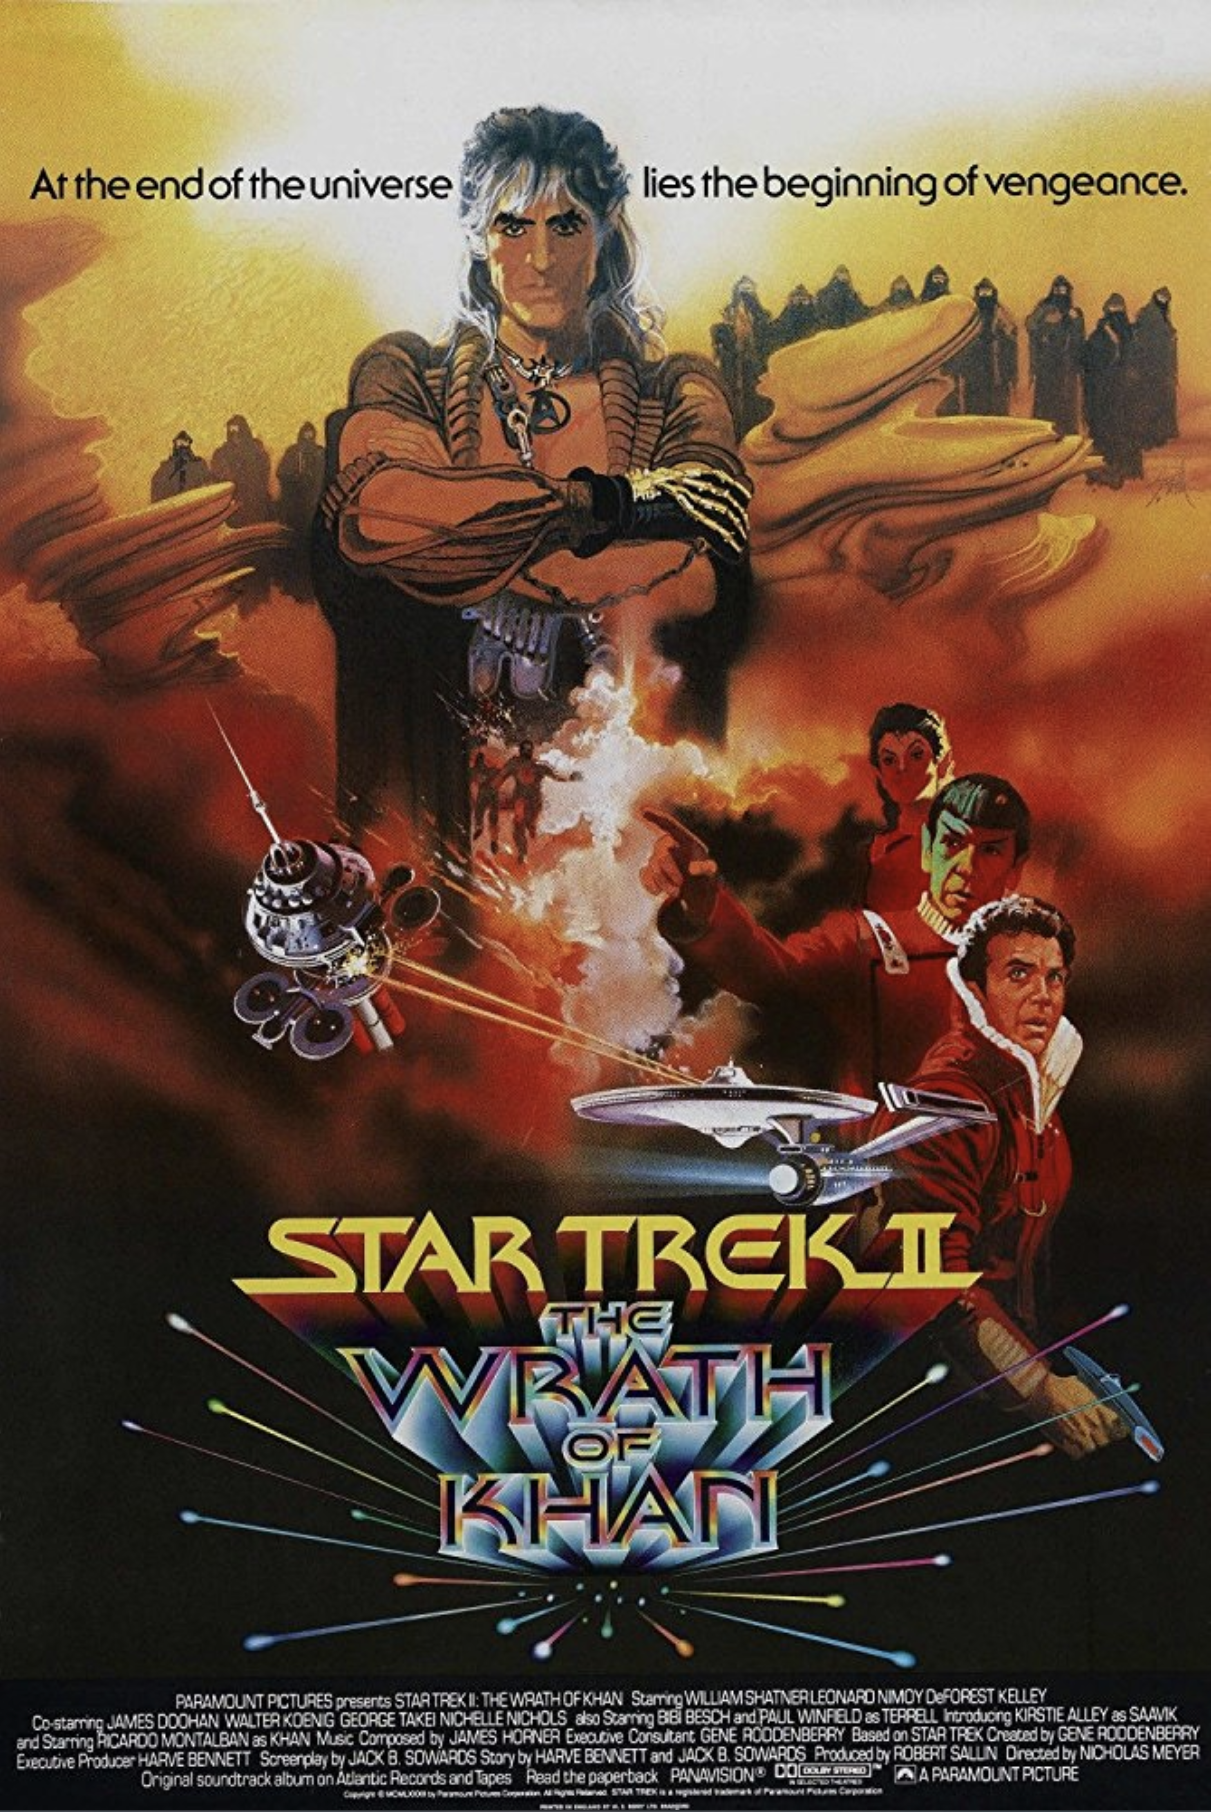 1982 Star Trek ll The Wrath of Kahn writ